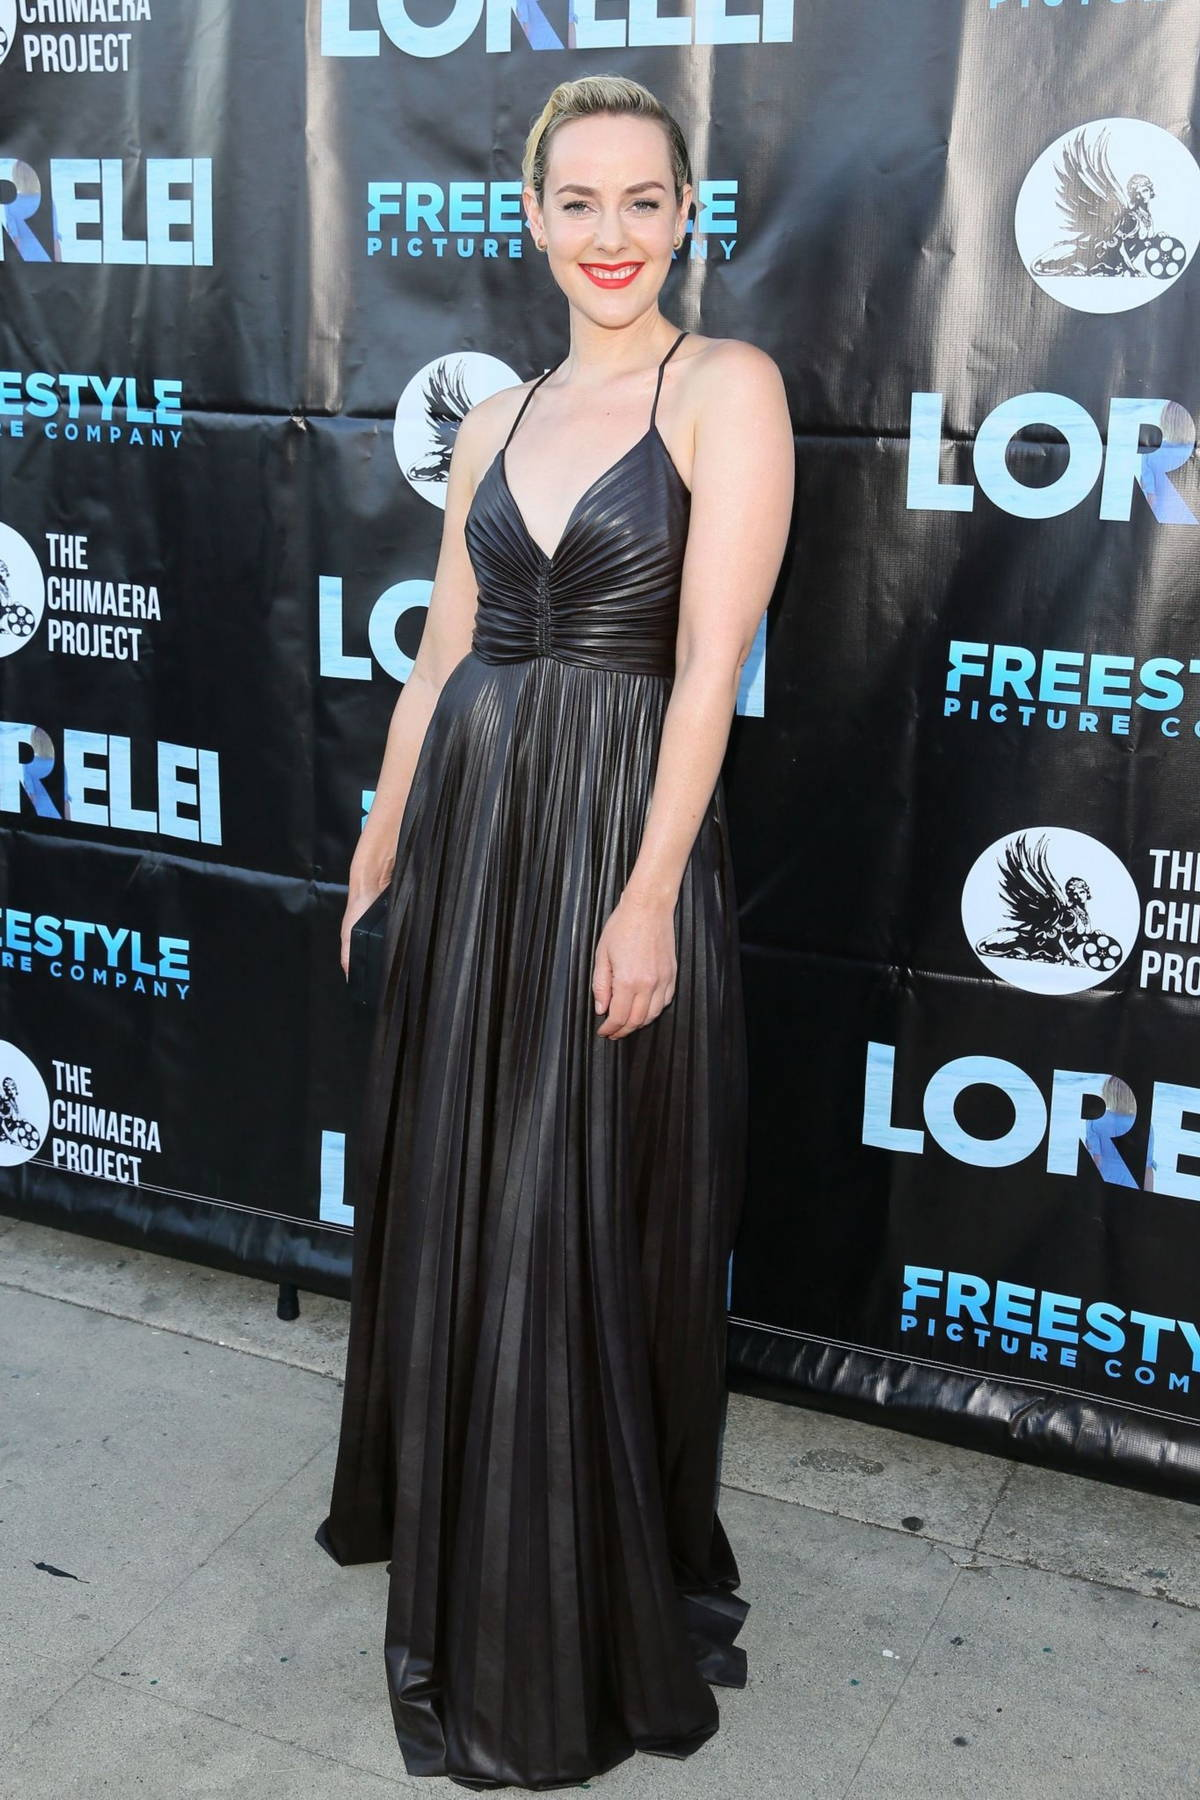 Jena Malone attends the premiere of 'Lorelei' at Laemmle Royal in Los Angeles